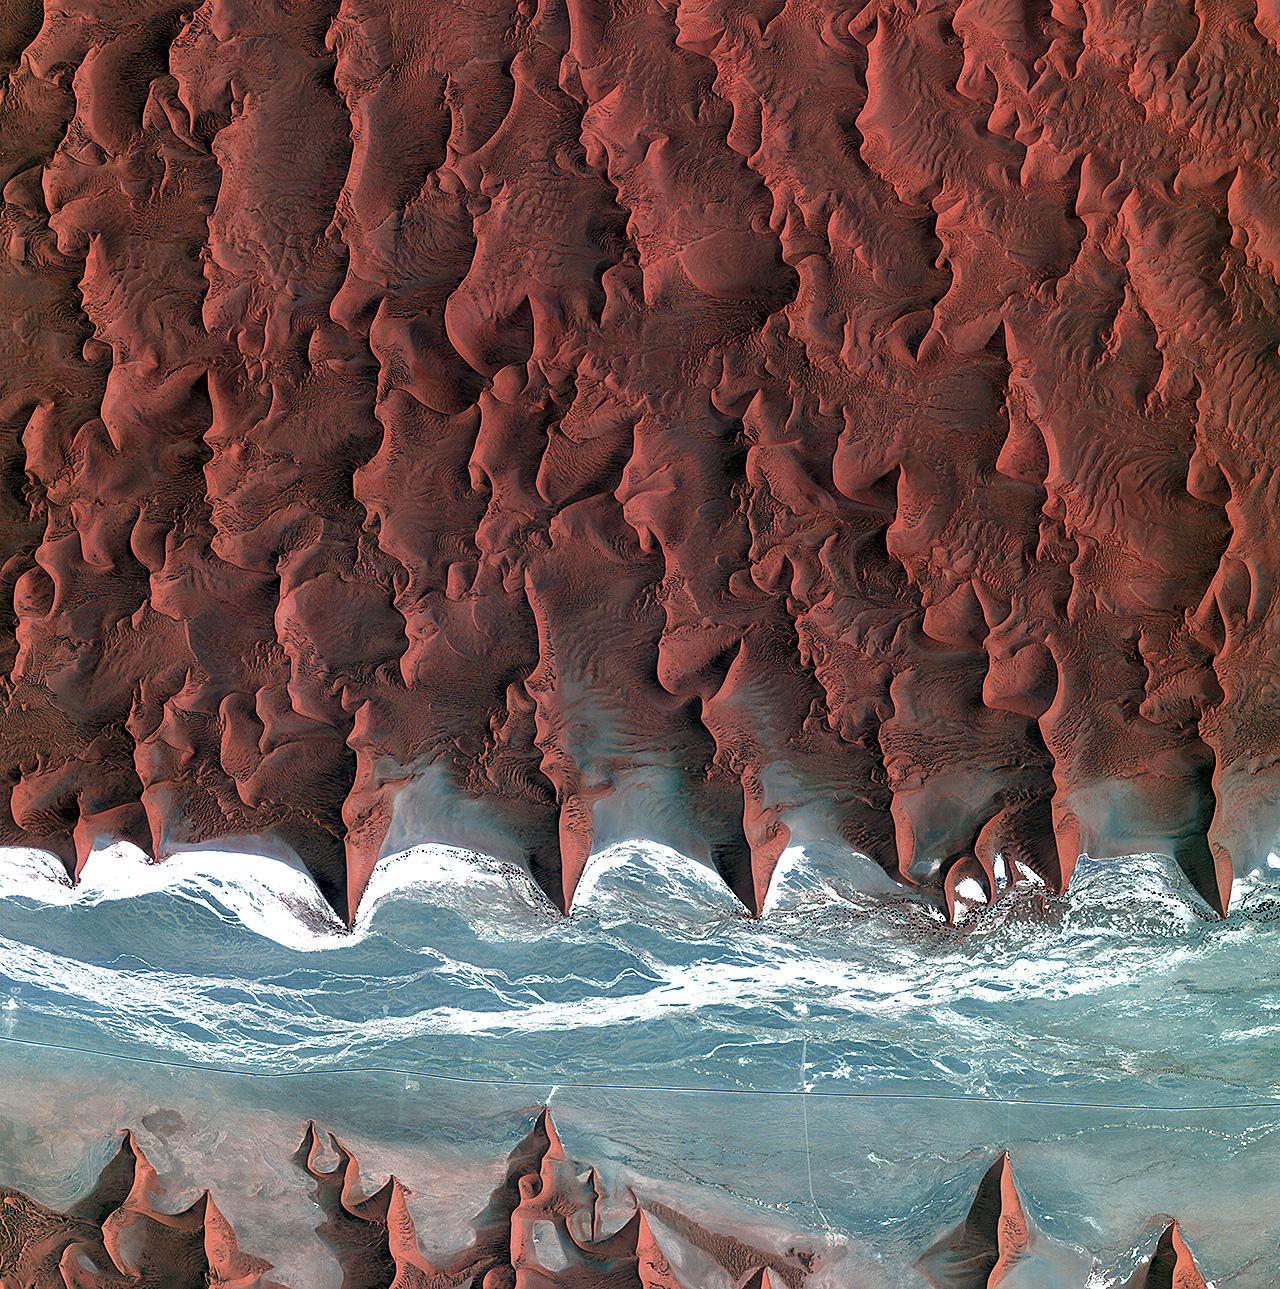 Earth from Space: Namib Desert by the European Space Agency